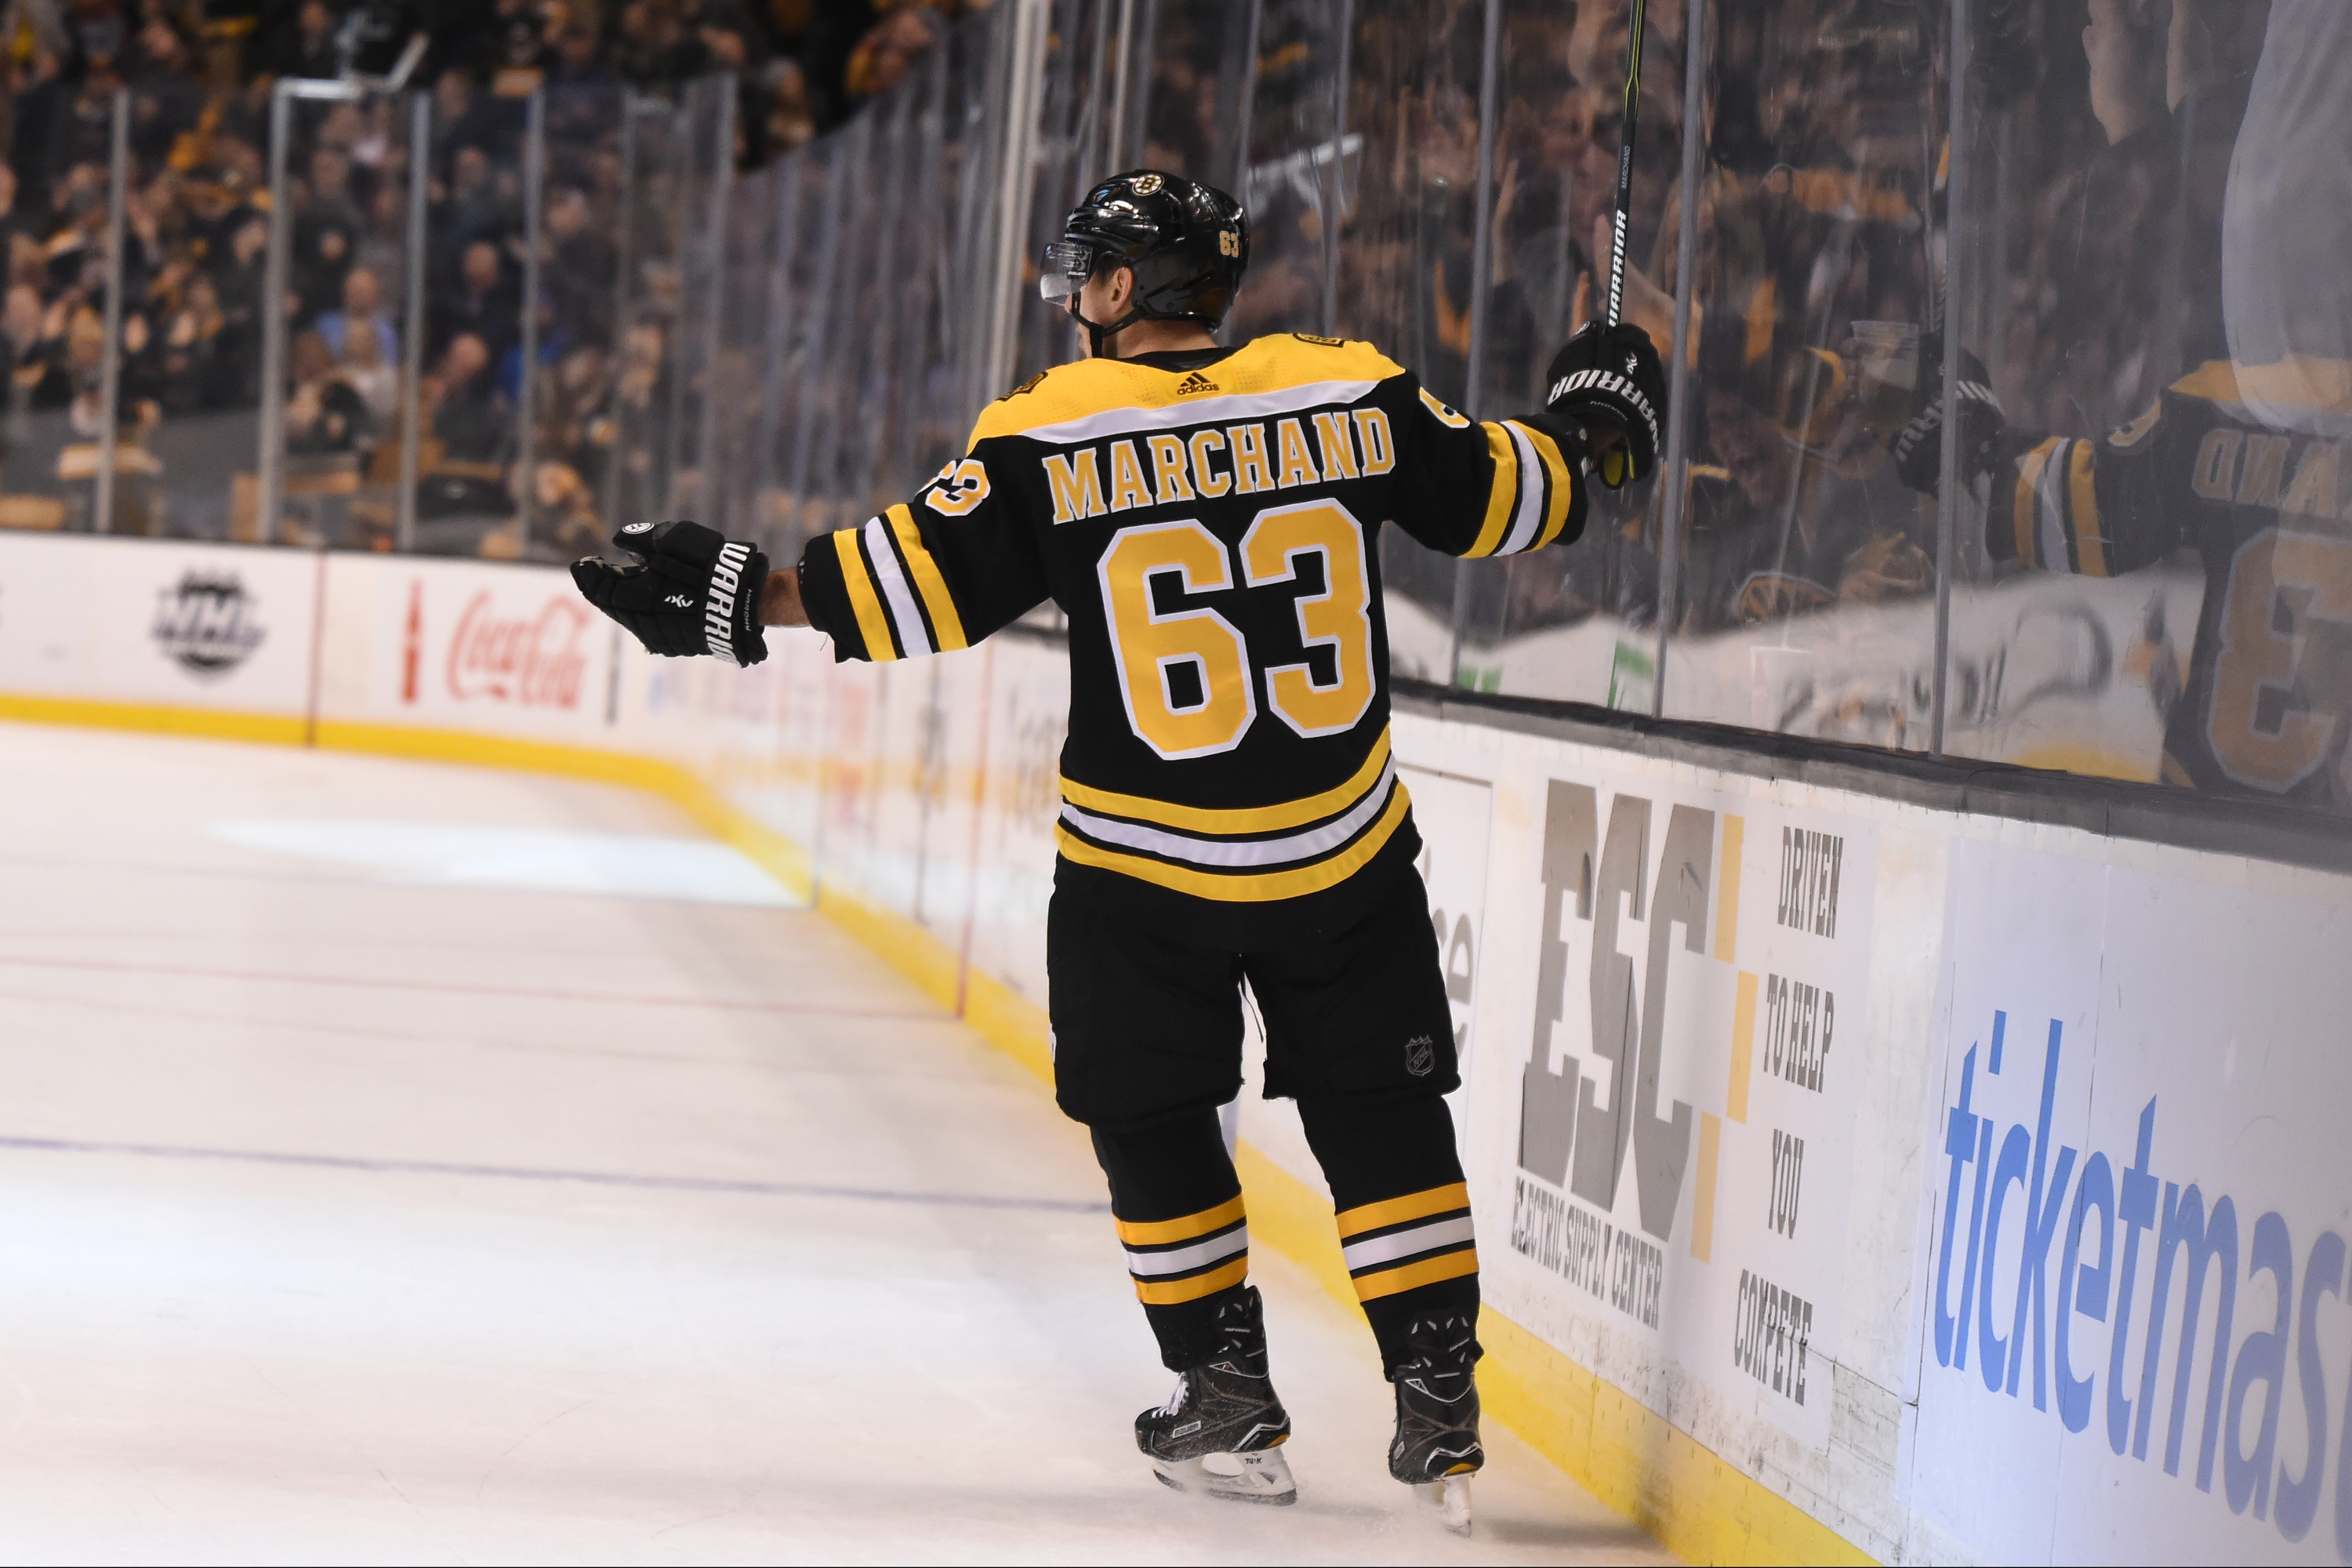 Brad Marchand Suspended 5 Games For Elbowing Marcus Johansson